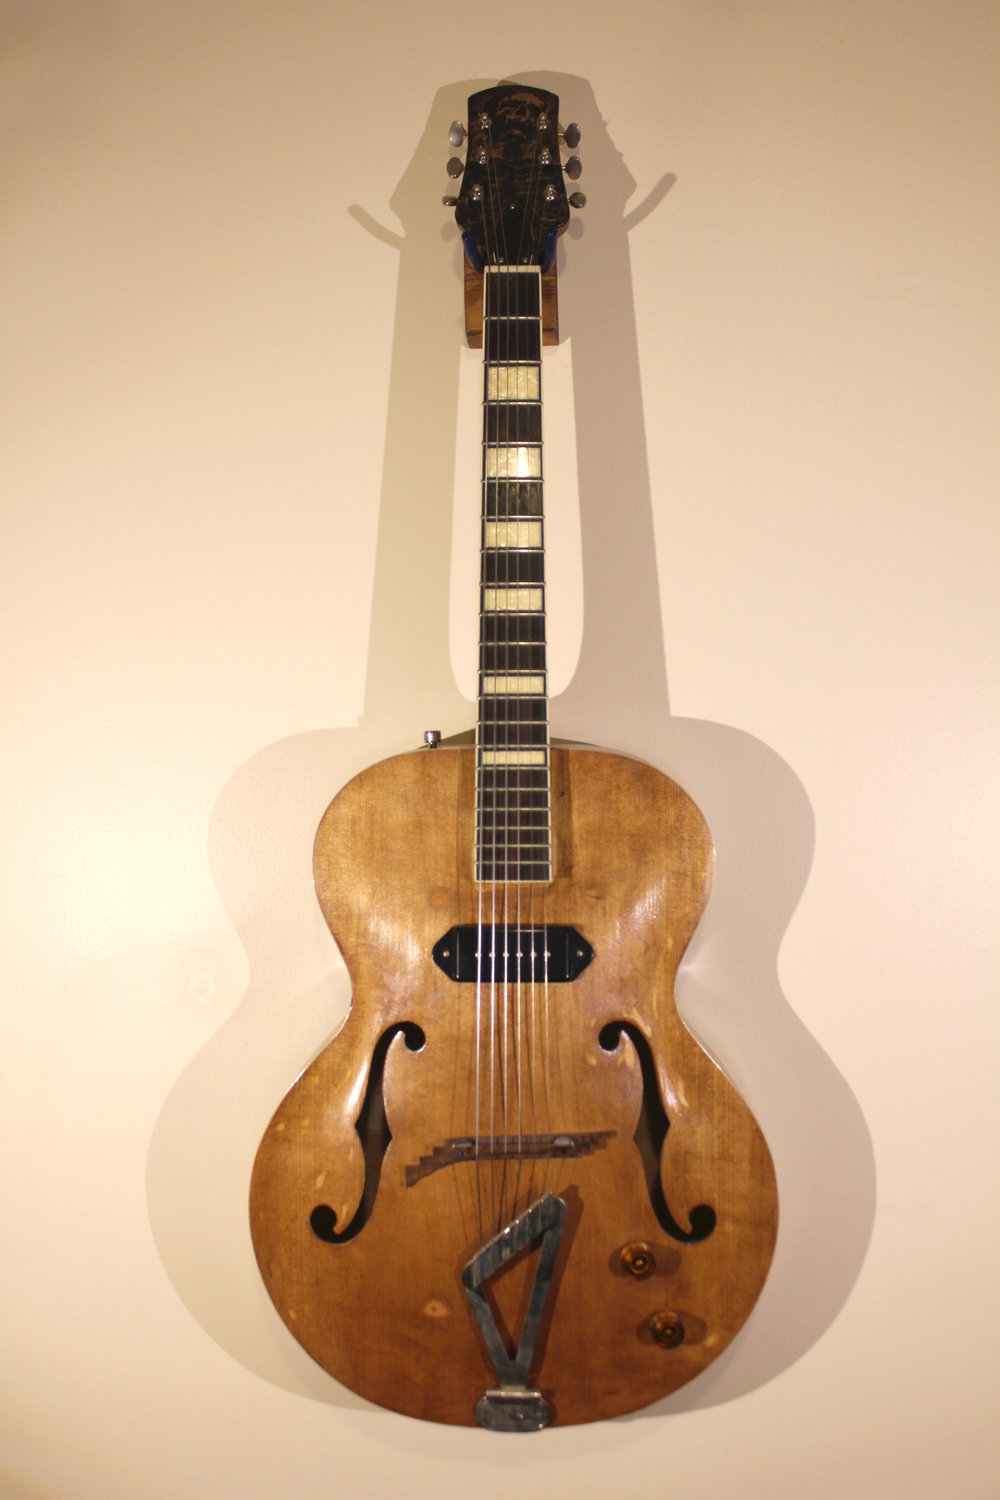 Archtop Custom   -not for sale- gretsch archtop, woodstain, copper headstock, sealer